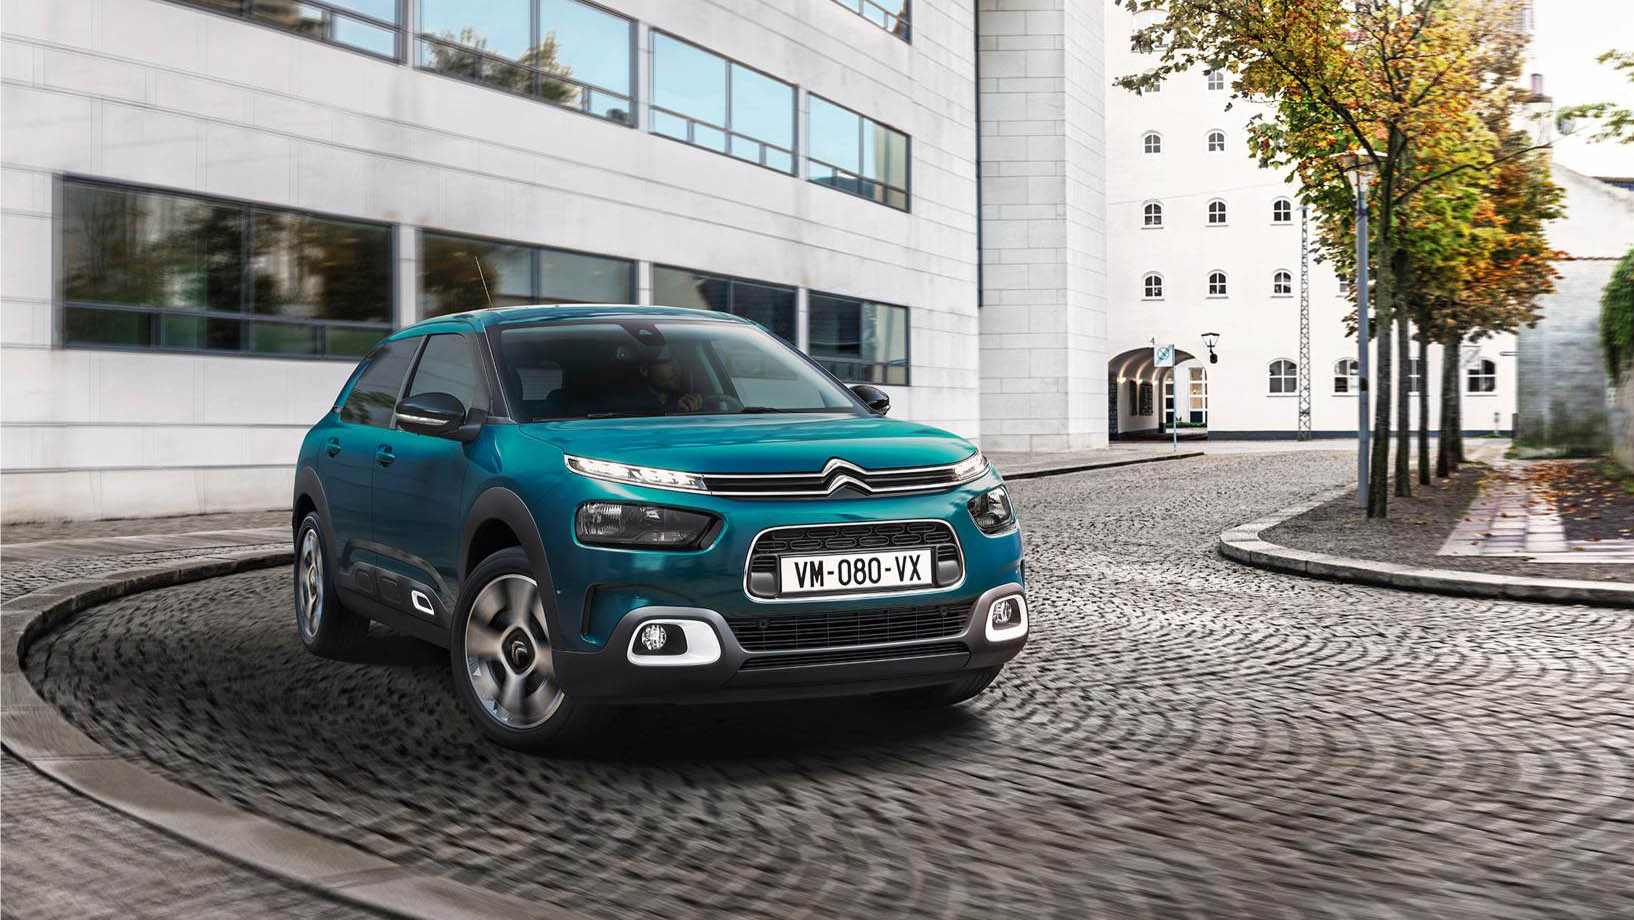 New Citroën C4 Cactus | Citroën News - Citroën UK